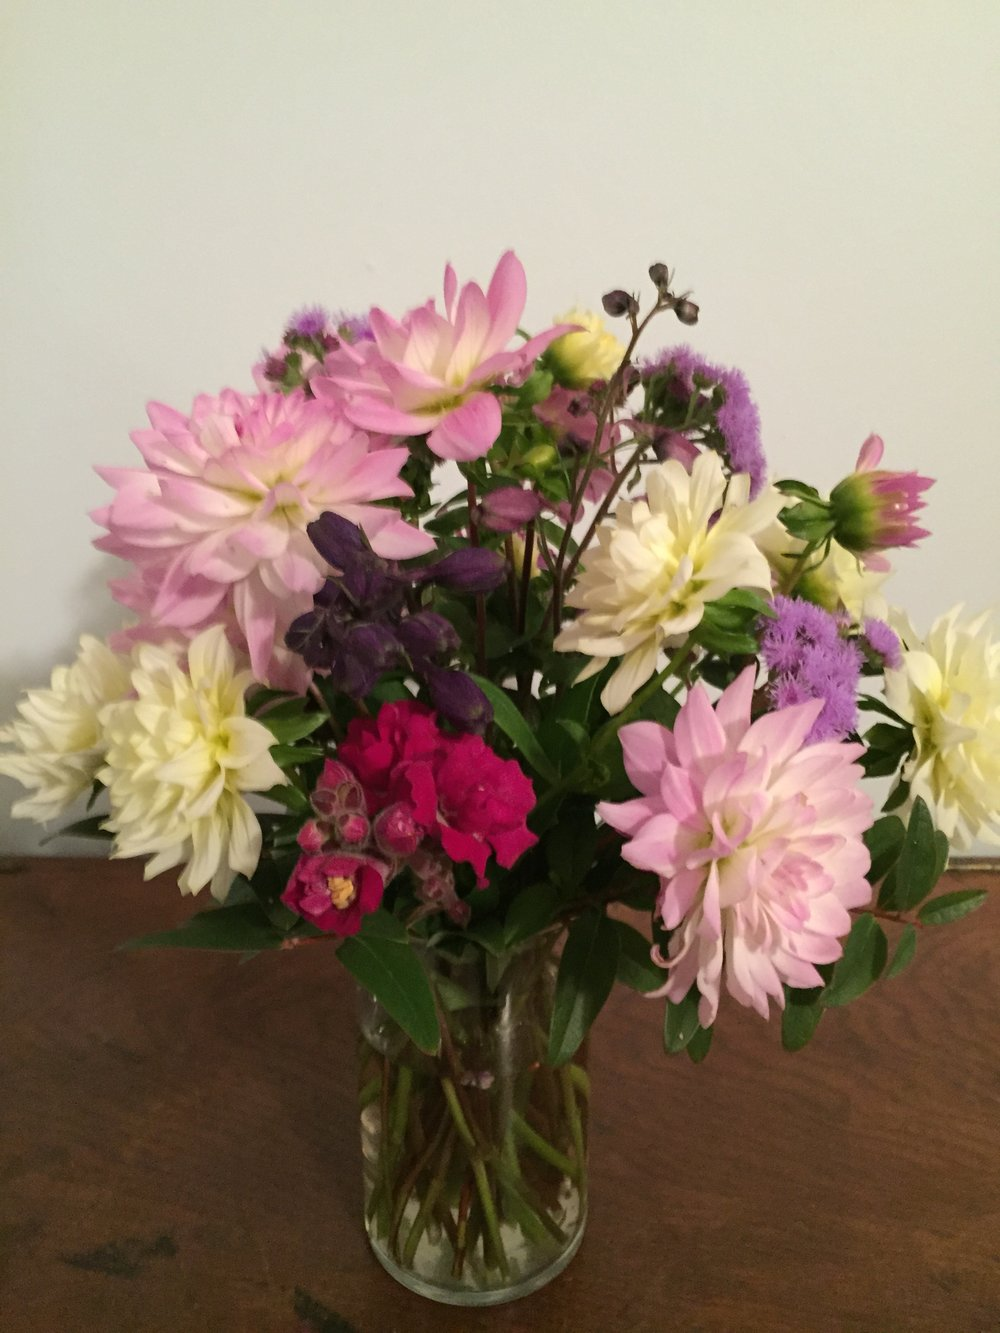 October- Ageratums, Dahlias, Delphiniums, and Snapdragons